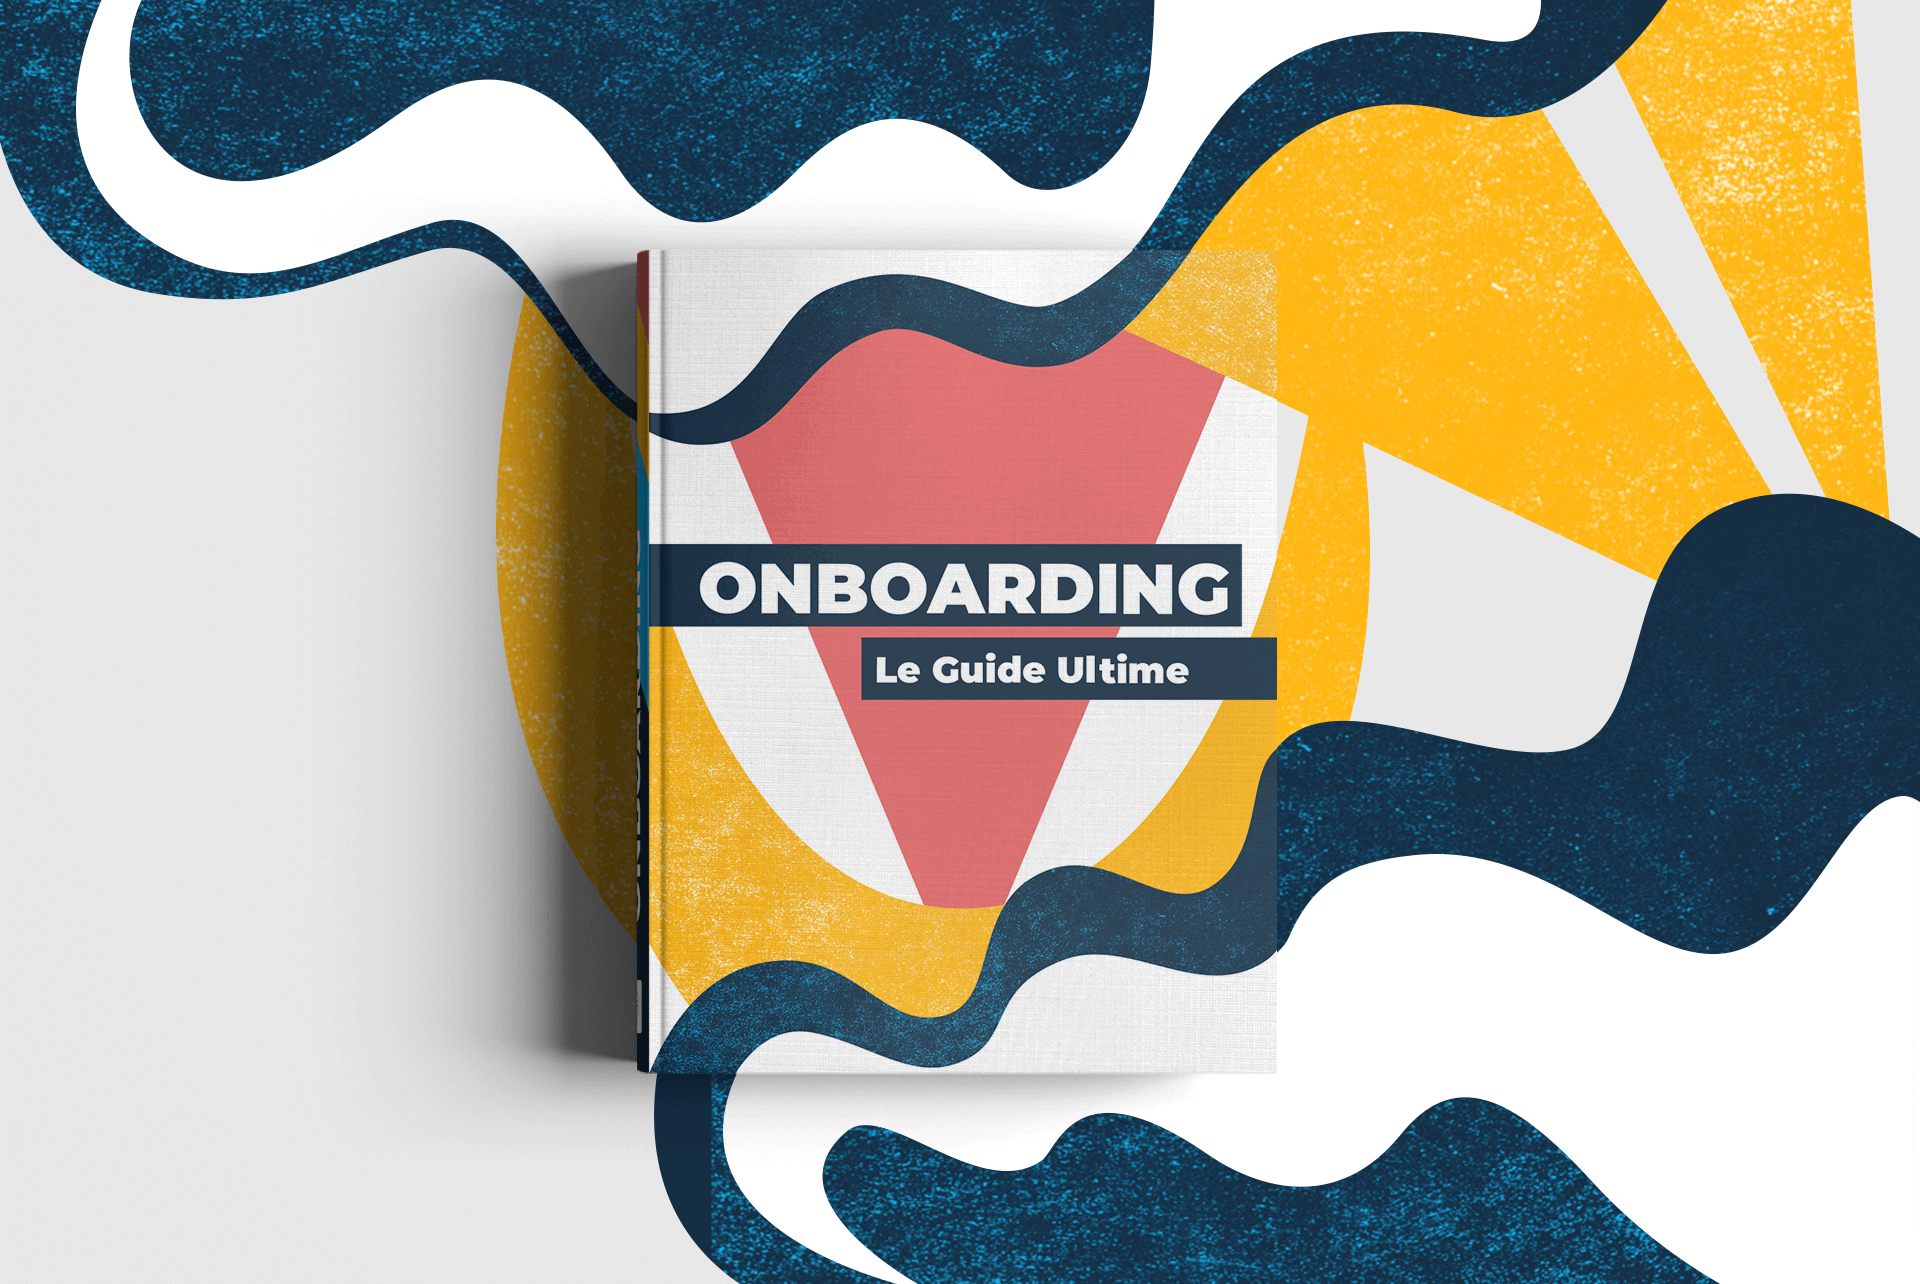 onboarding-guide-ultime